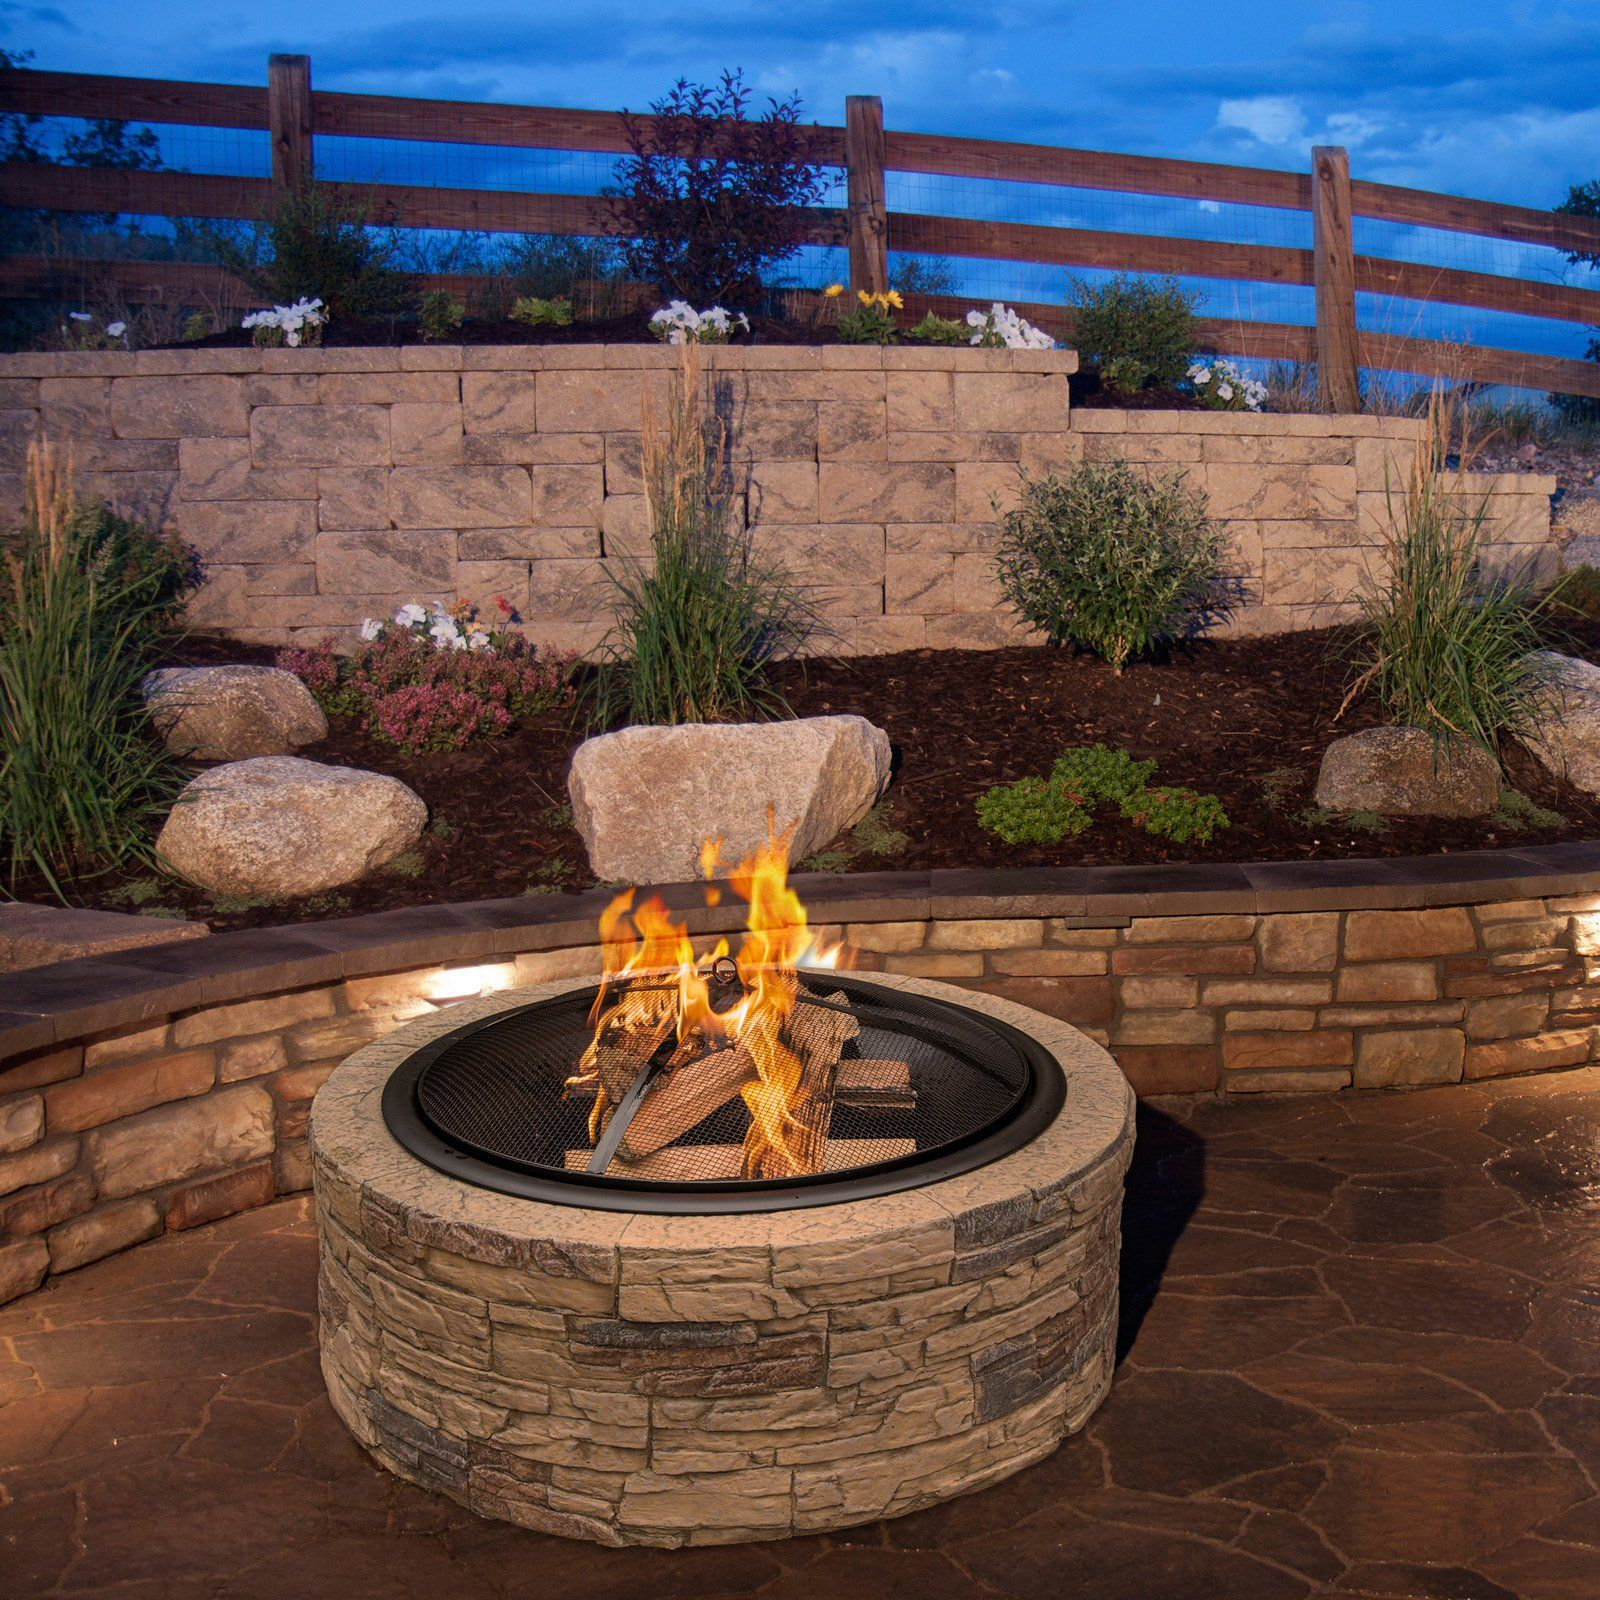 Sun Joe Classic Stone Cast Stone Fire Pit With Dome Screen And Poker Stone Fire Pit Wood Fire Pit Wood Burning Fire Pit